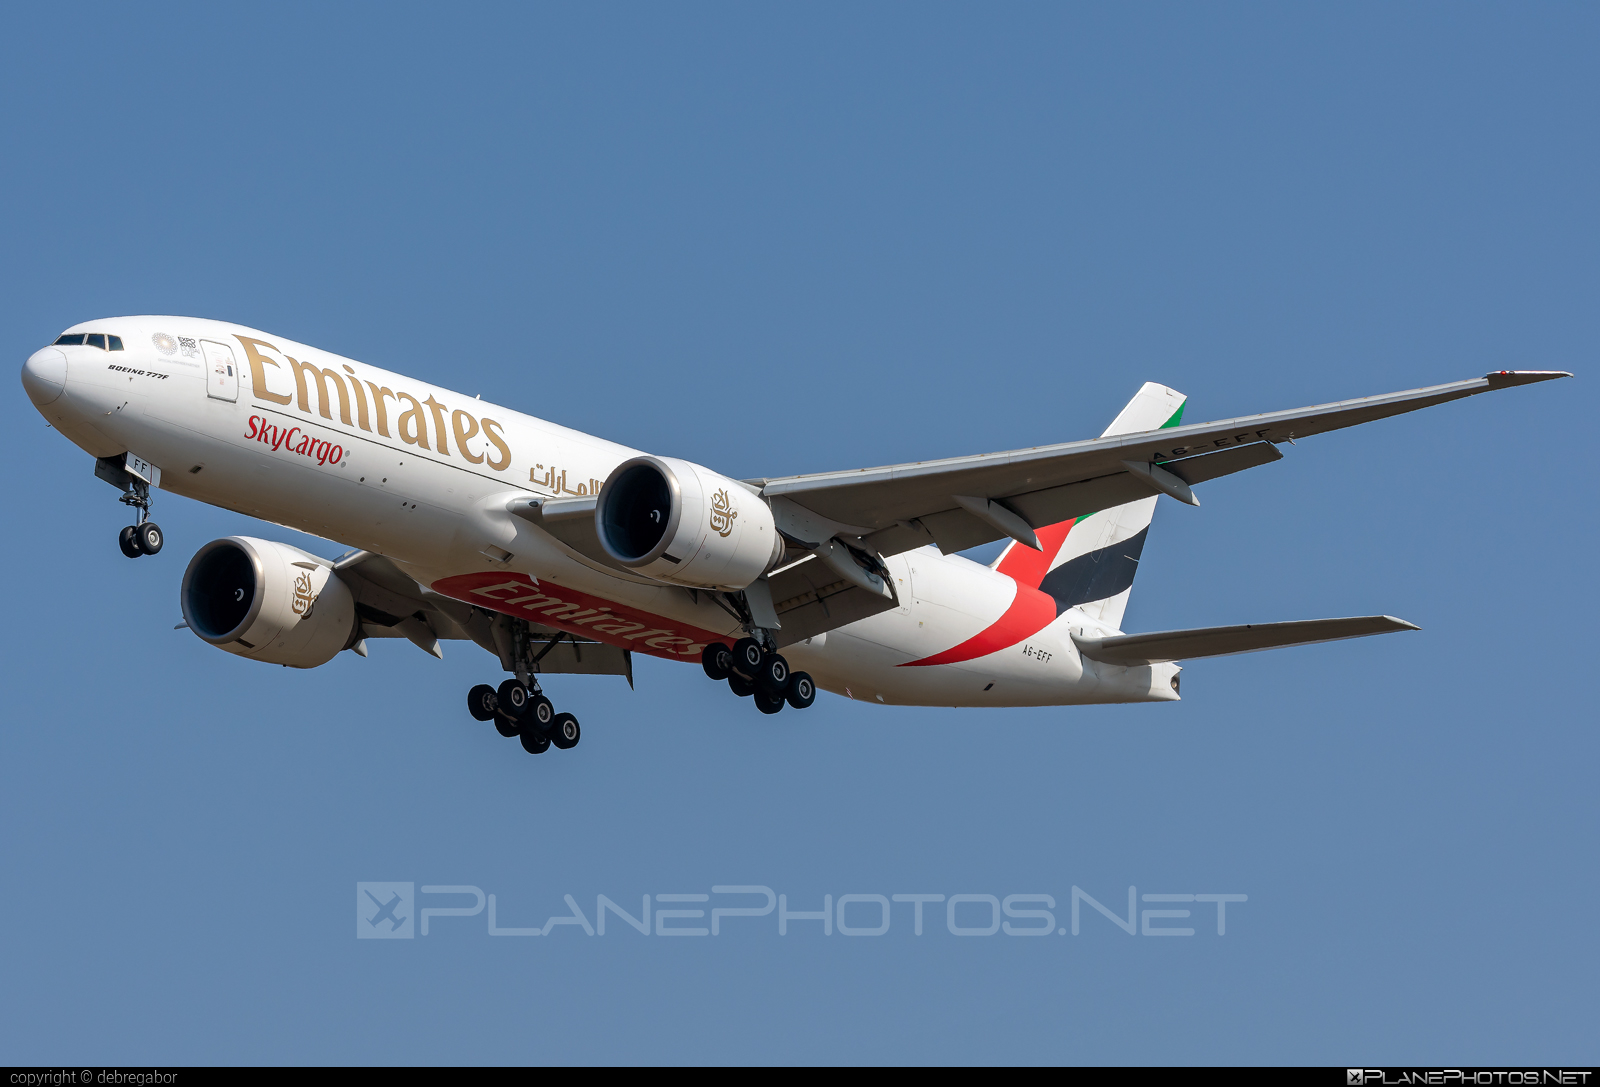 Boeing 777F - A6-EFF operated by Emirates SkyCargo #b777 #b777f #b777freighter #boeing #boeing777 #tripleseven